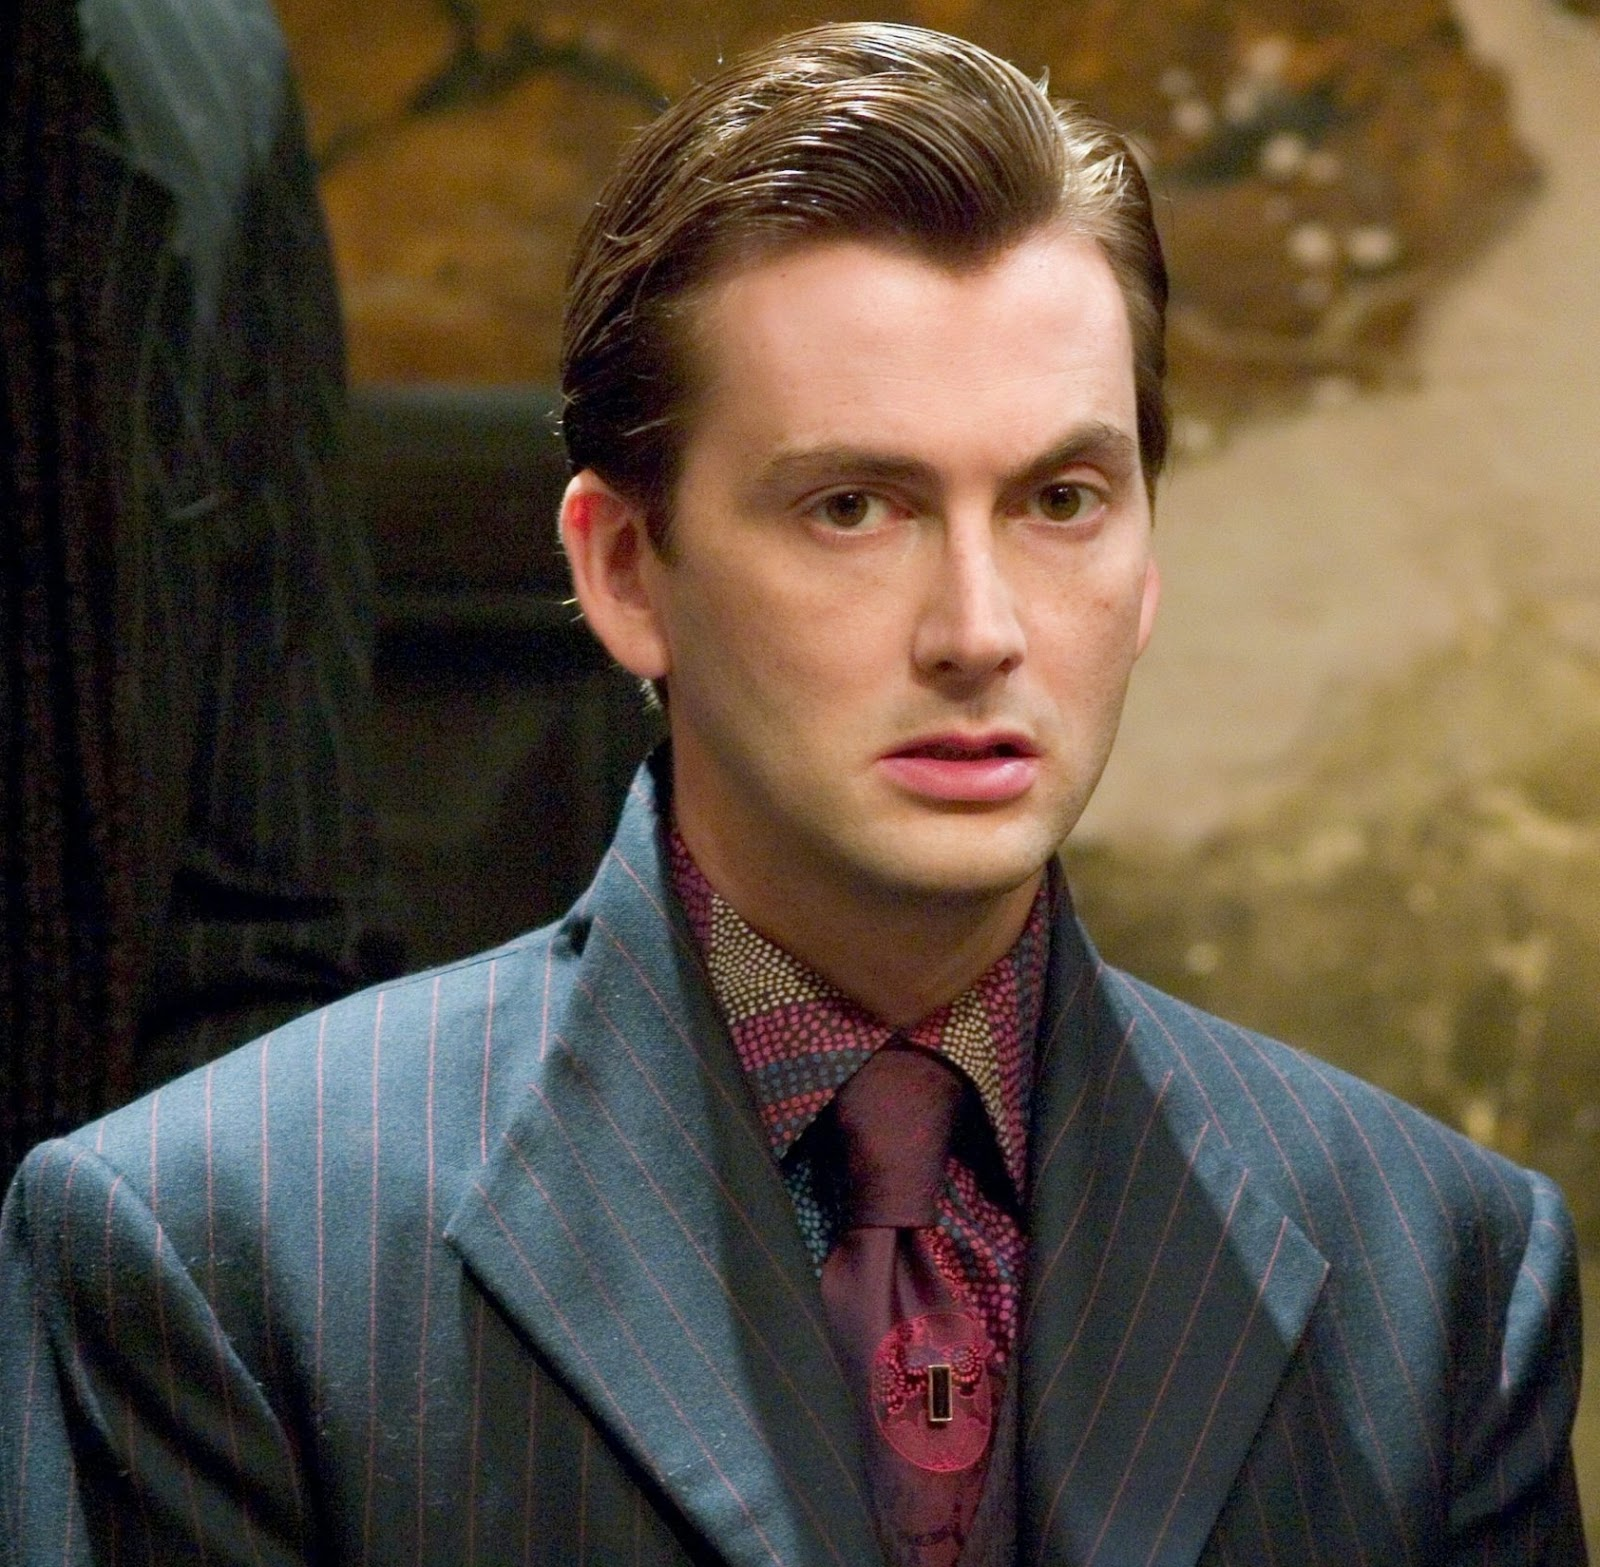 1024x768 David Tennant Hairstyle Wallpaper Wallpaper